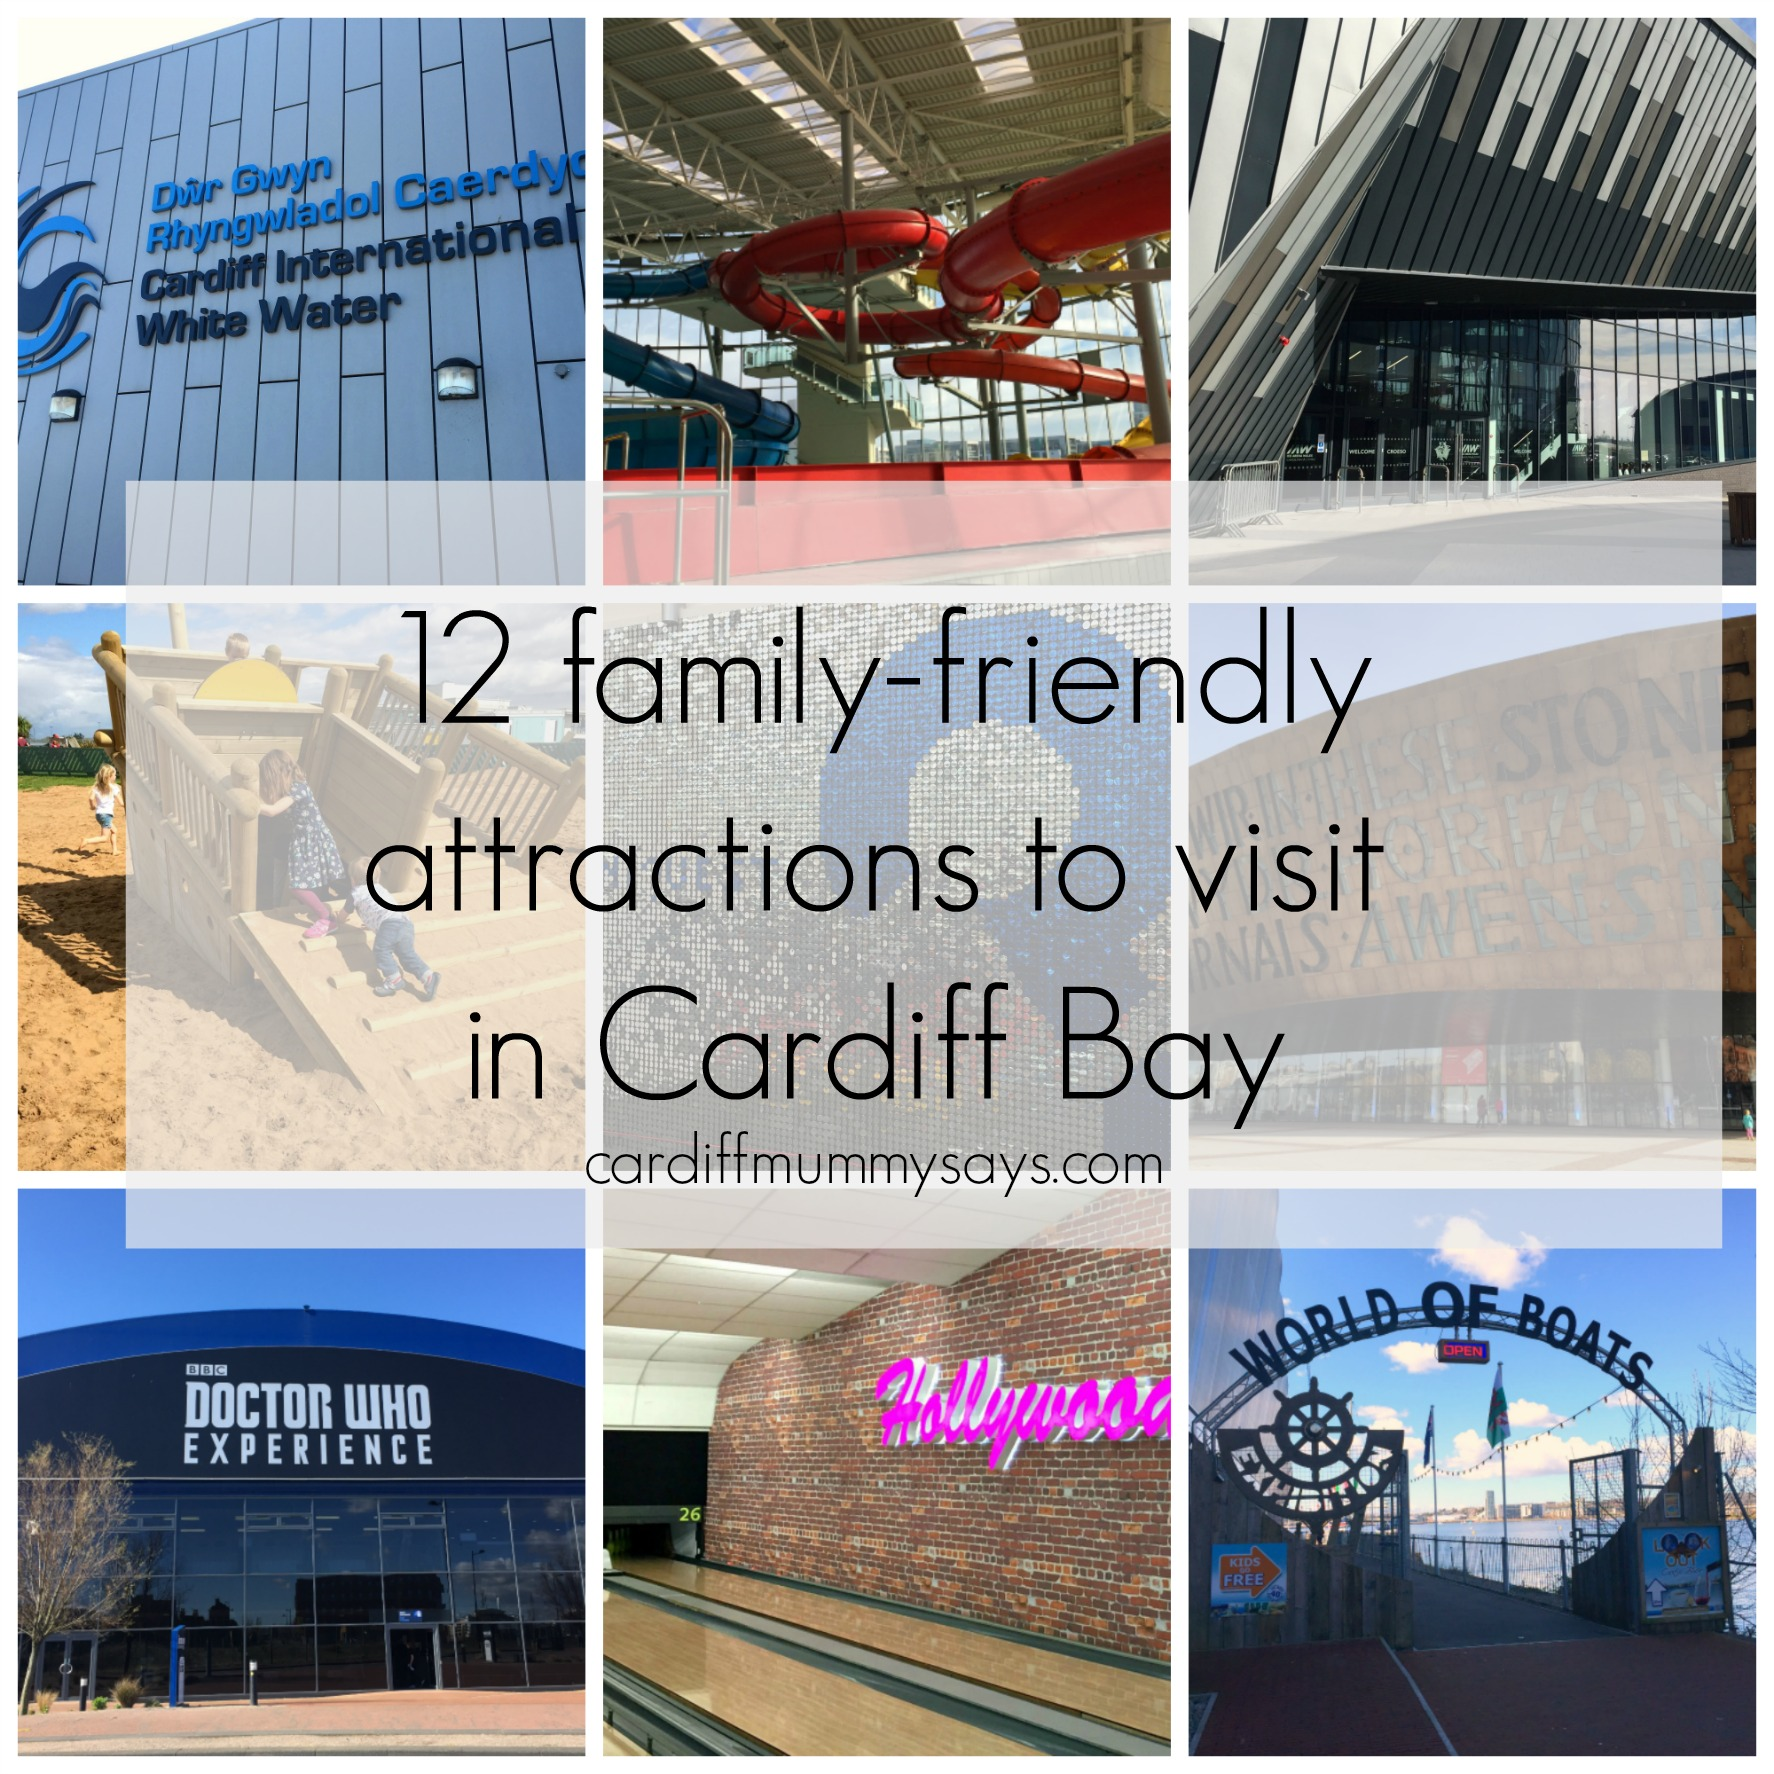 Cardiff Bay Collage 1 with text